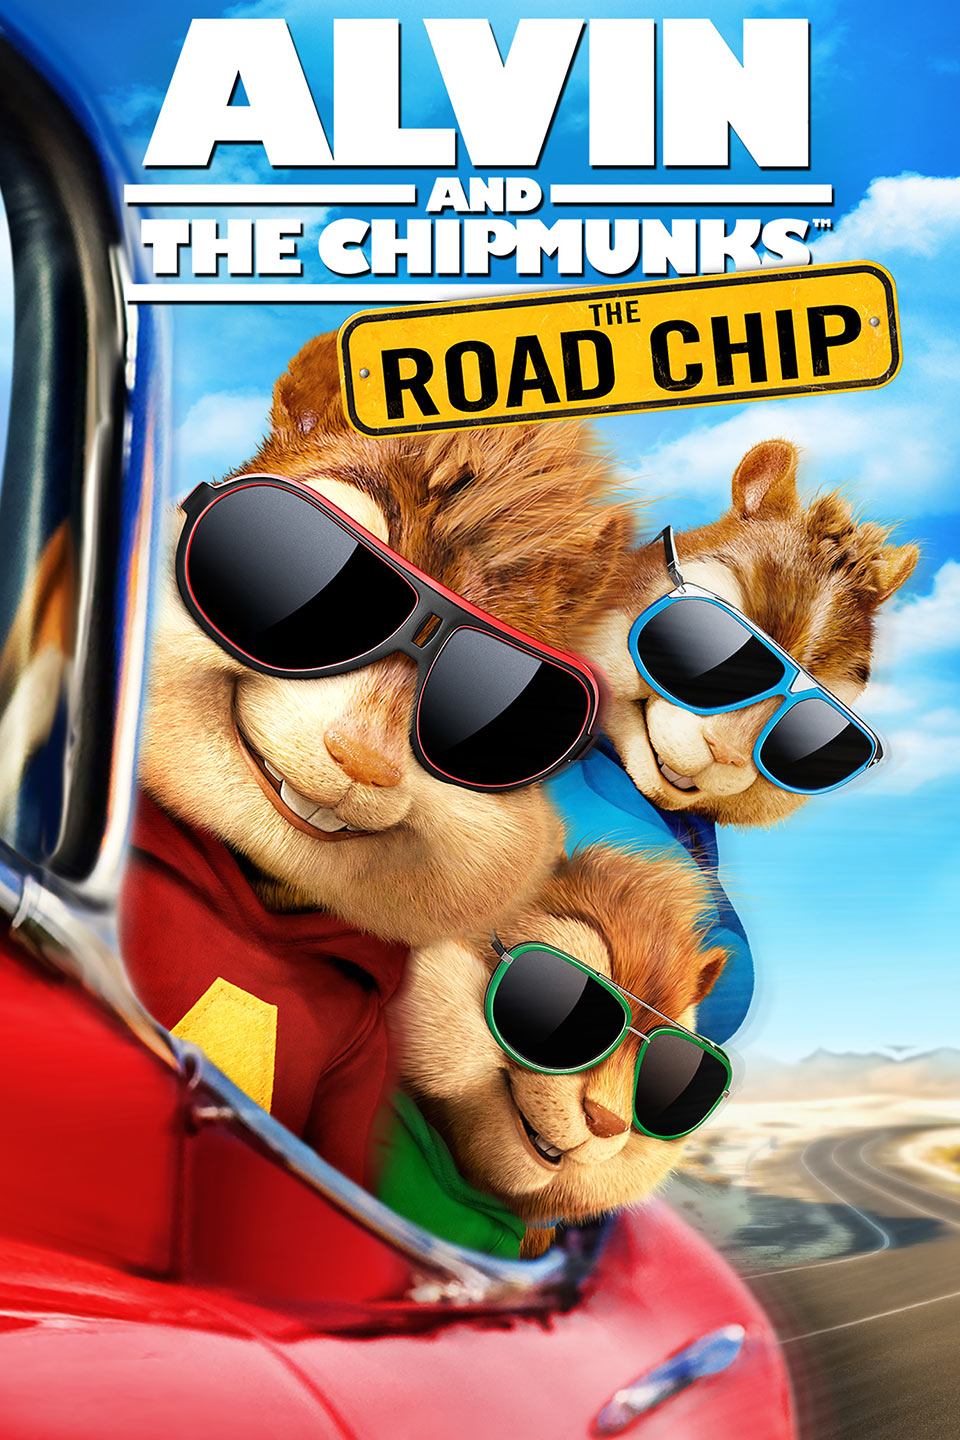 Alvin-And-The-Chipmunks-Road-Chip-960x1440